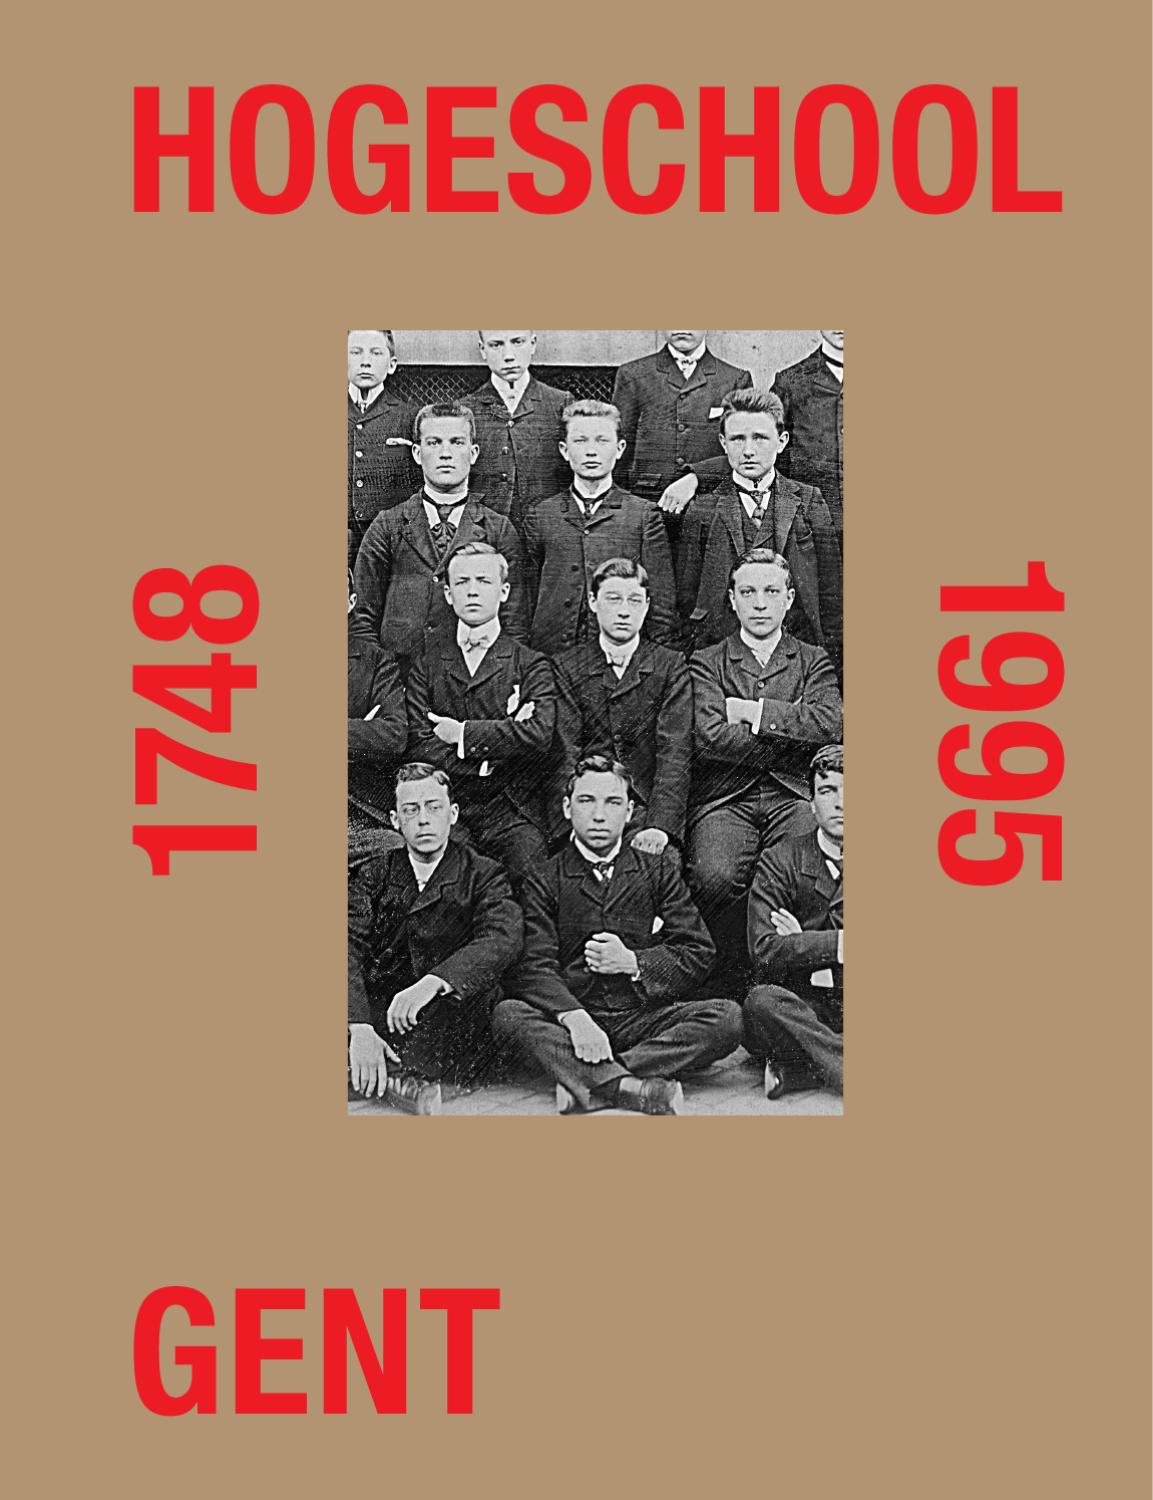 Hogeschool gent 1748 1995 (sample pages) by studio luc derycke   issuu